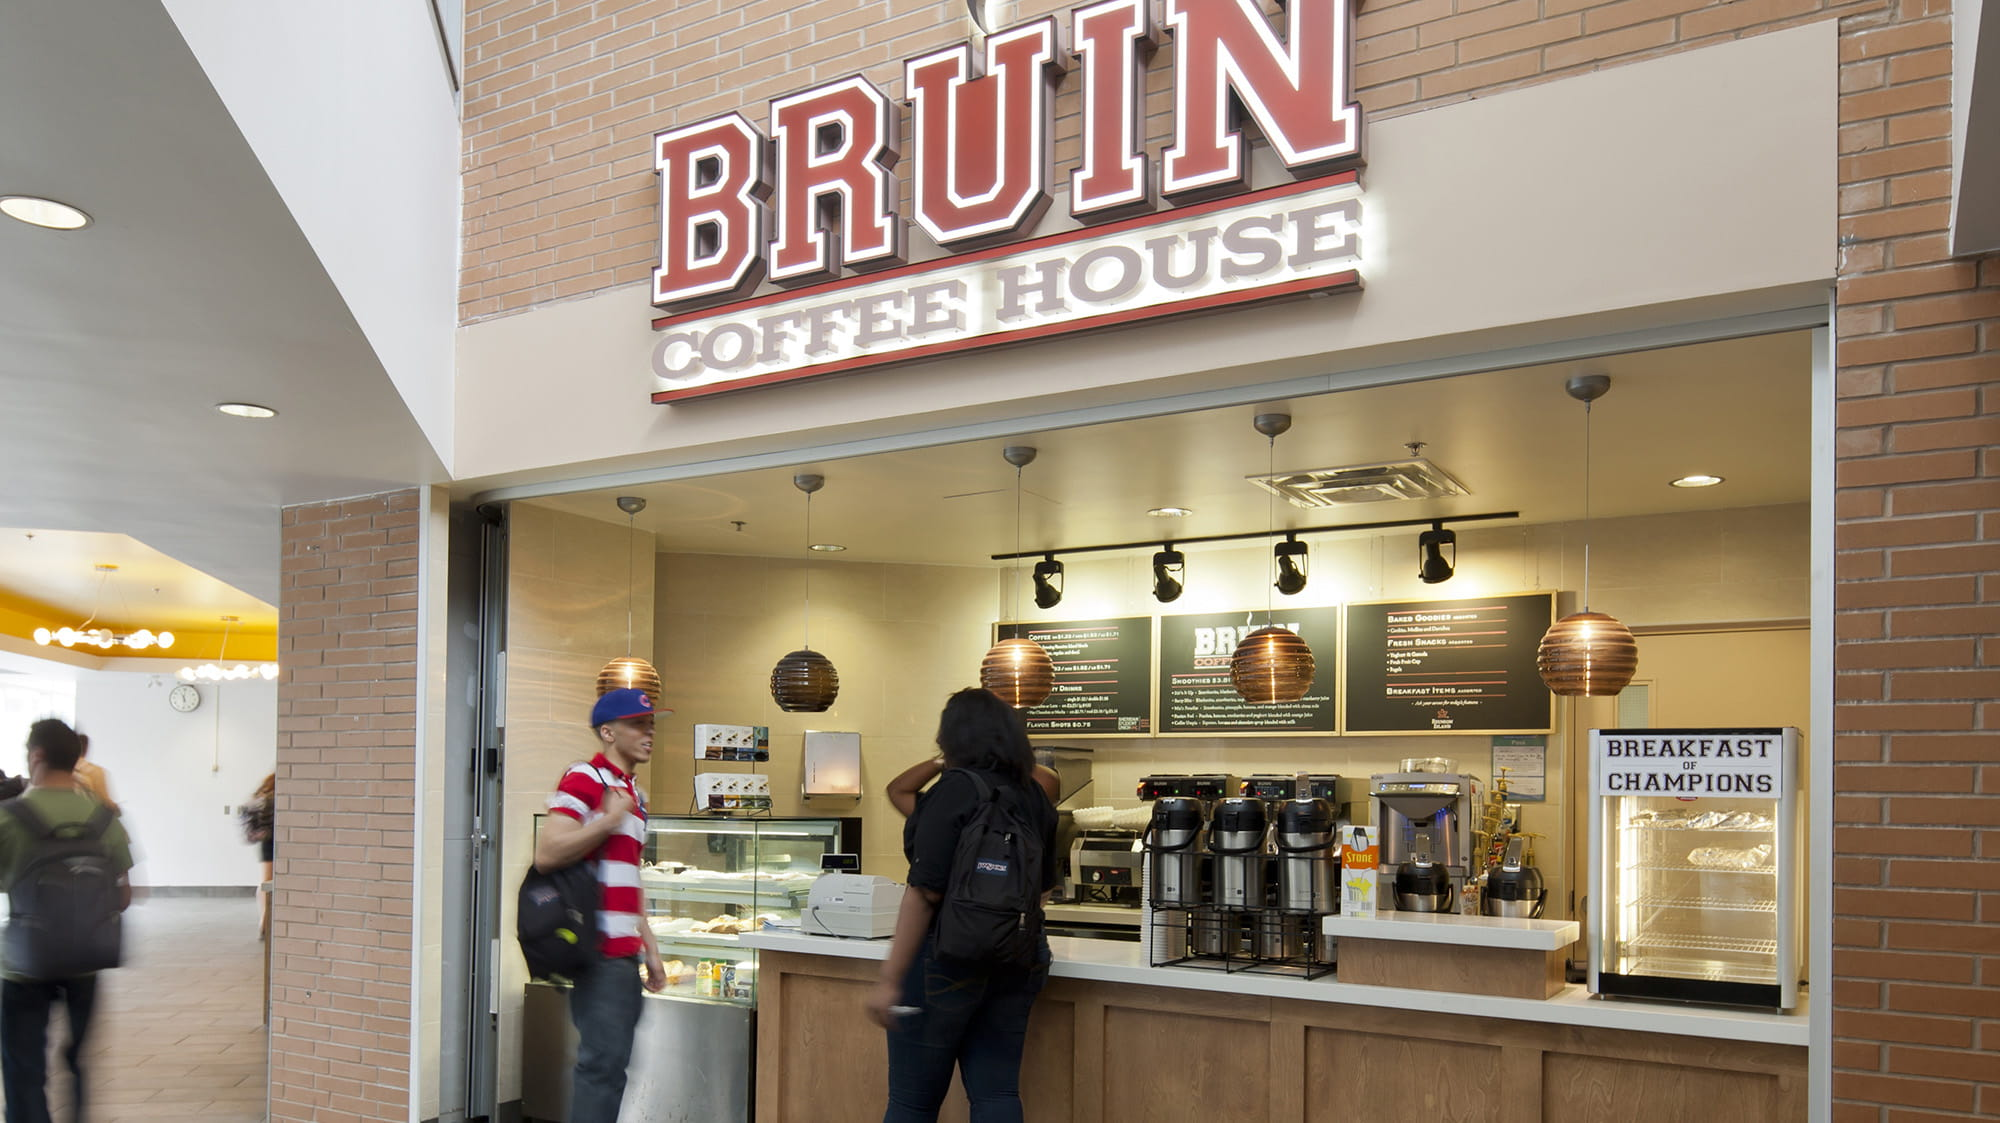 The Bruin Coffee House sign over the counter where students are ordering coffee